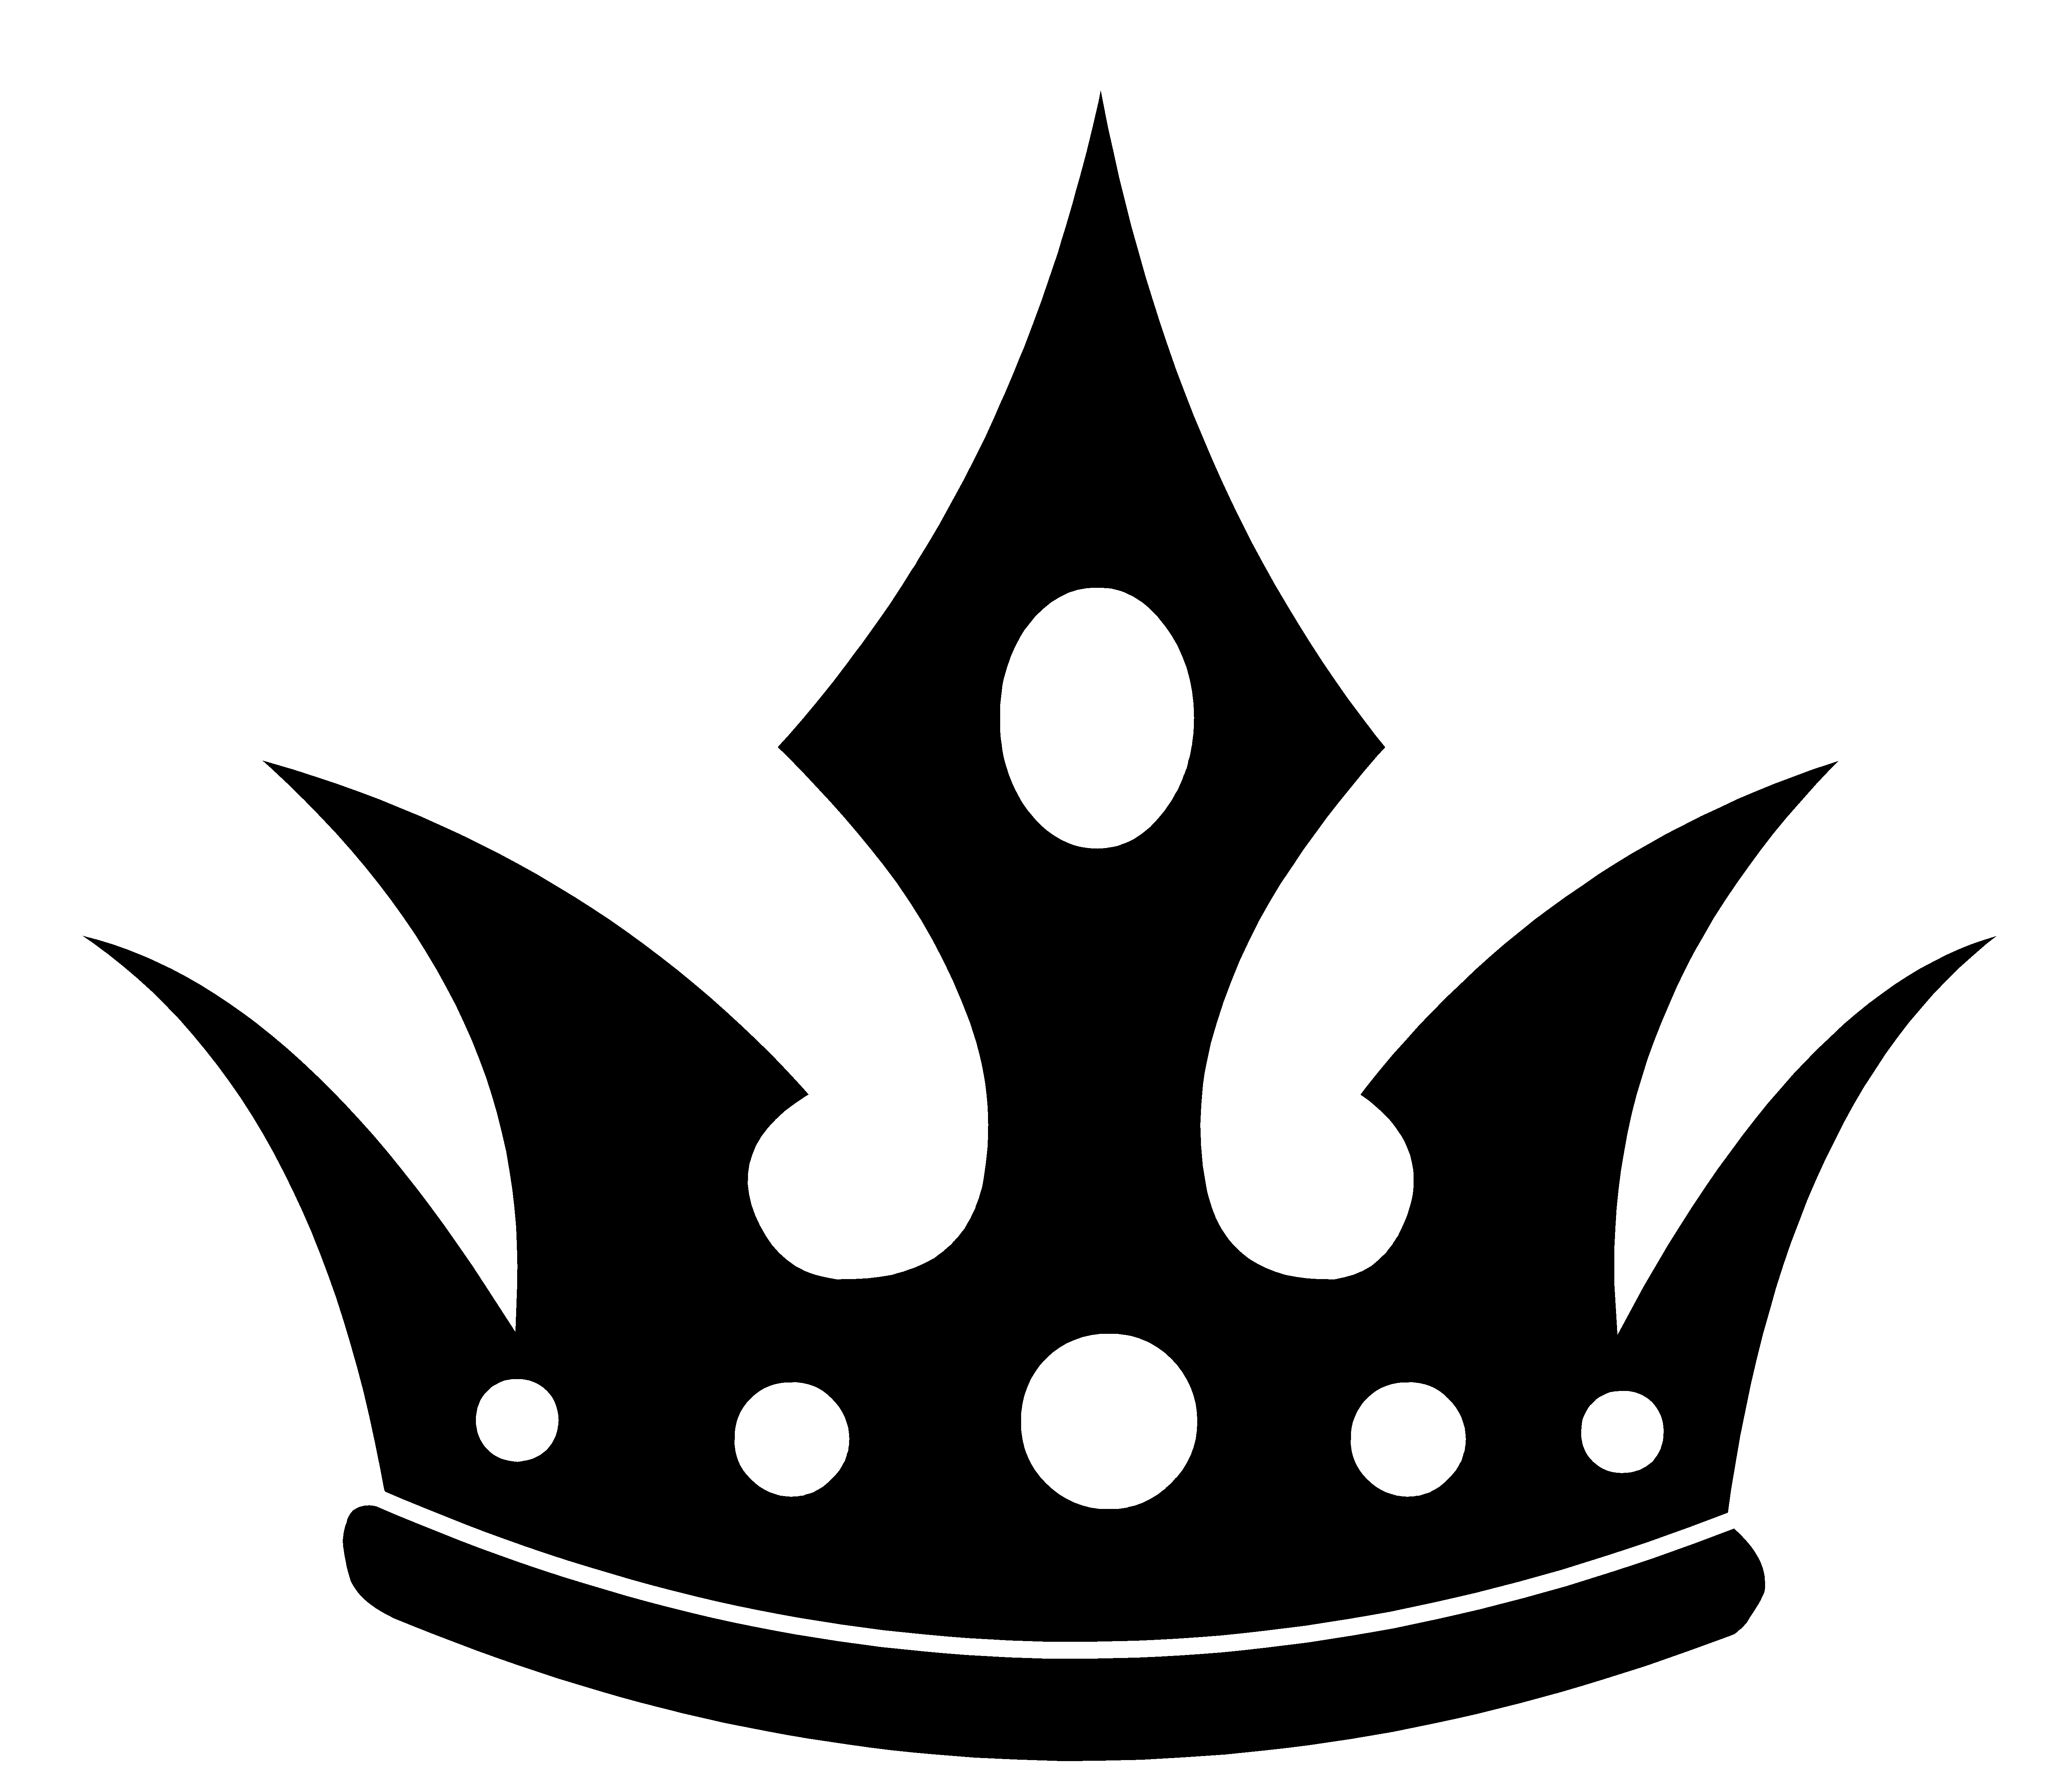 Crown clipart s anderson.